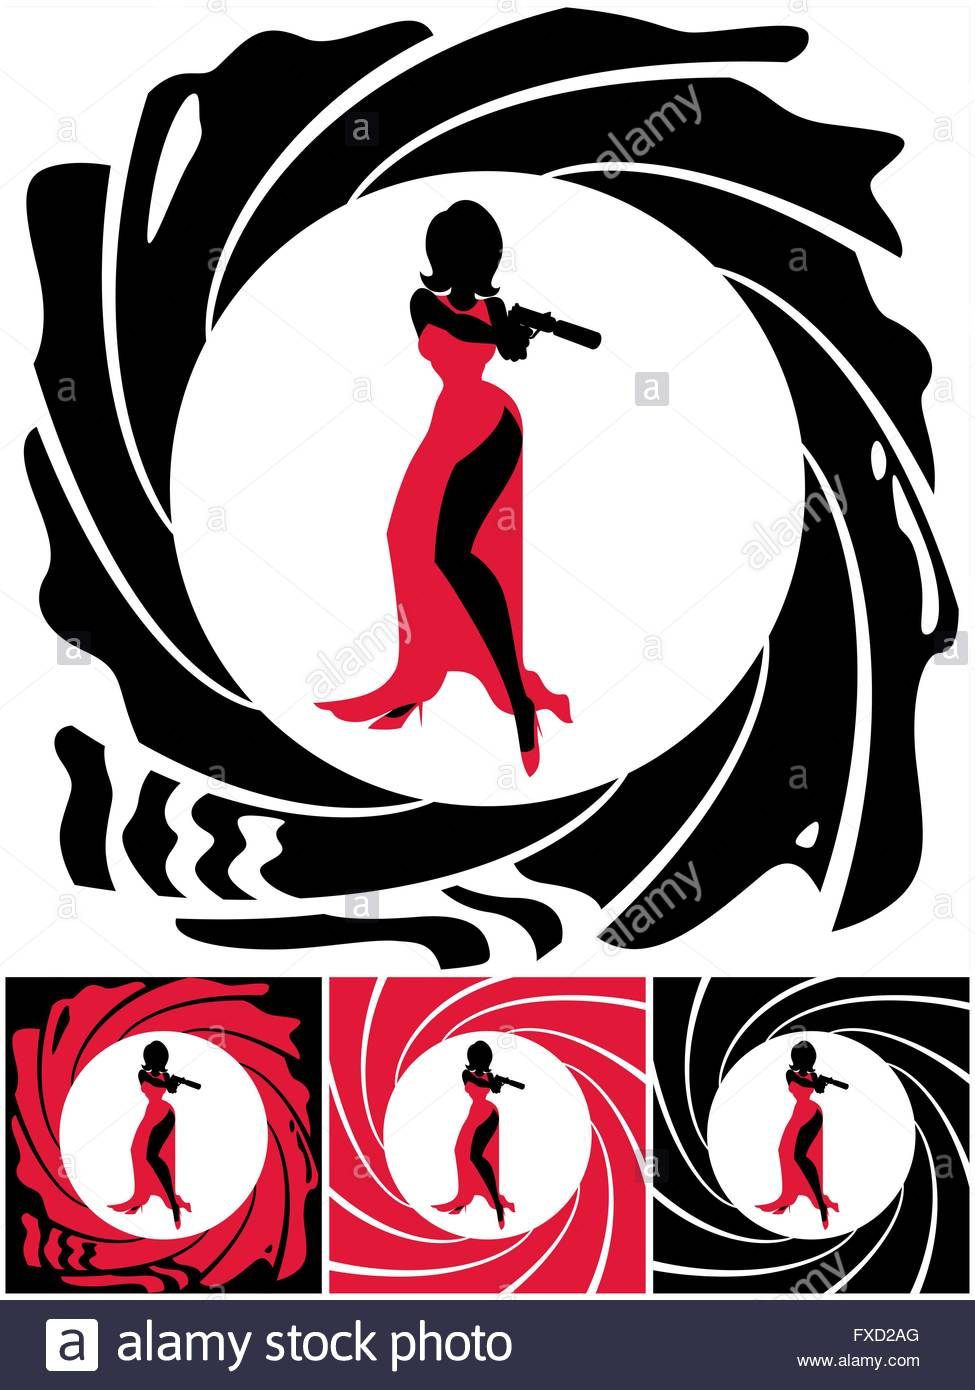 975x1390 Silhouette Of Female Secret Agent. Illustration Is In 4 Versions